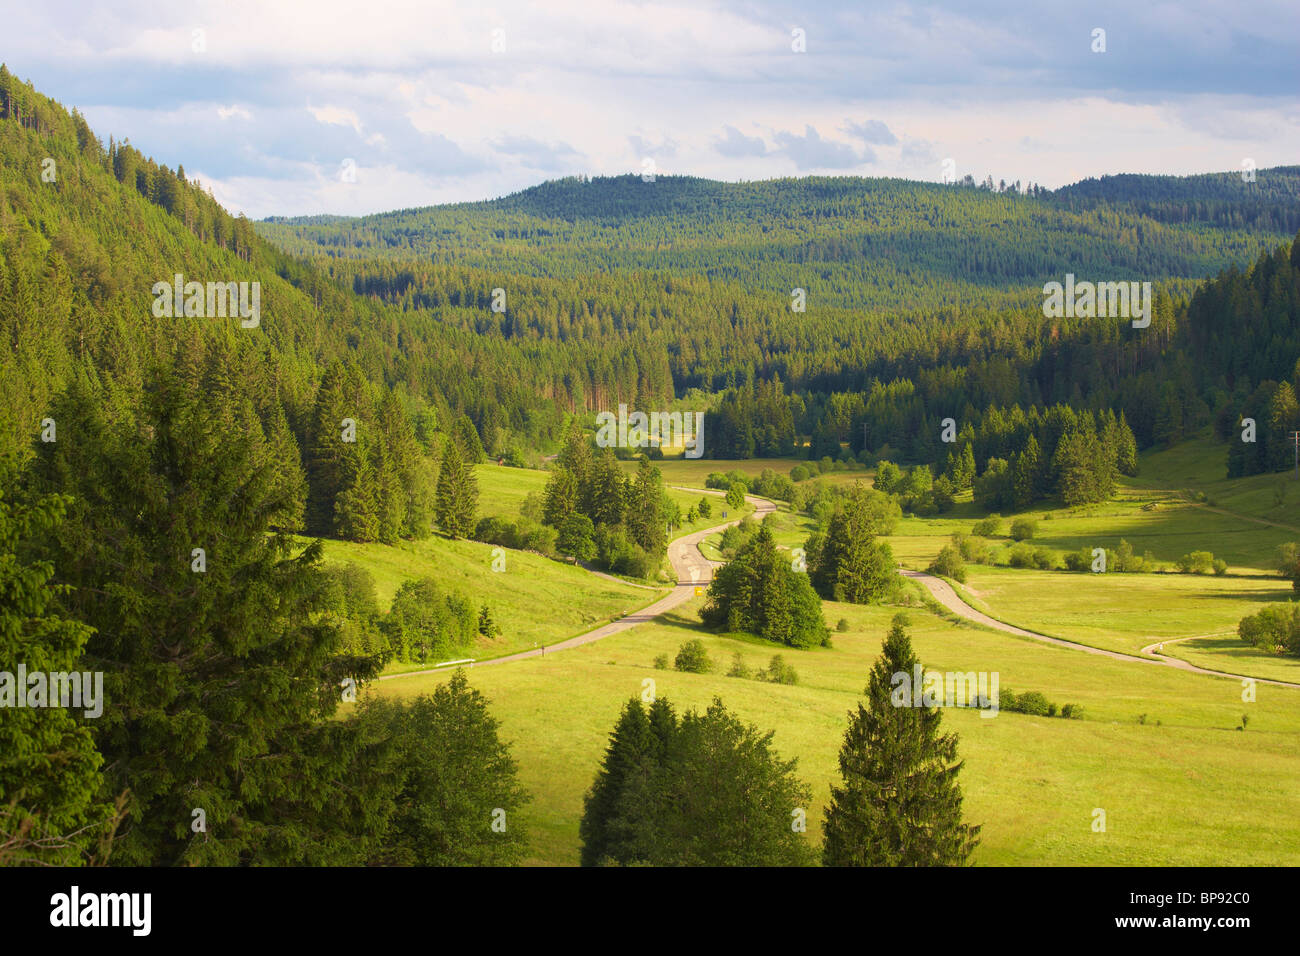 Valley of the river Alb near Menzenschwand, Summer day, Black Forest, Baden-Wuerttemberg, Germany, Europe - Stock Image